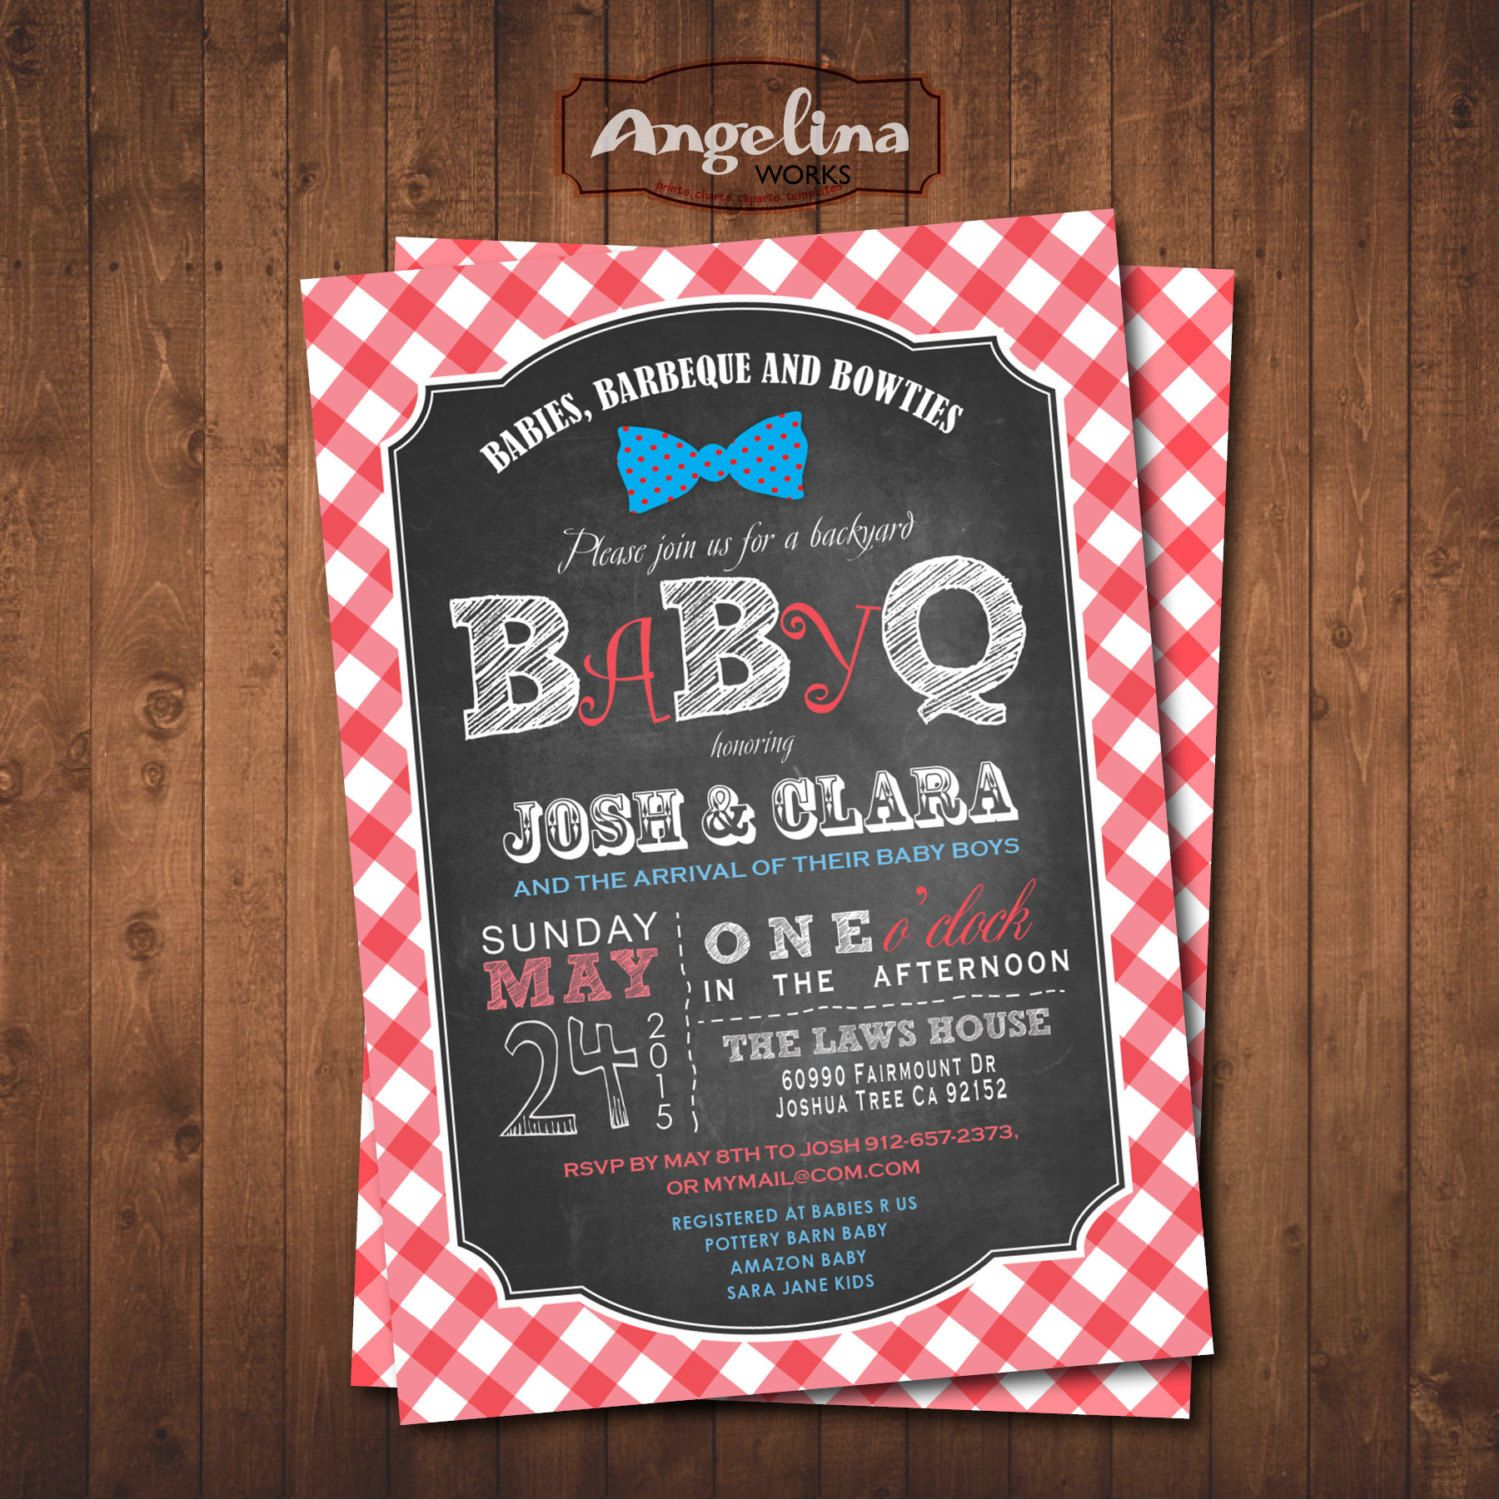 Baby Q Shower invitation. Barbecue Chalkboard Invitation. Digital Printable card by AngelinaWorks on Etsy